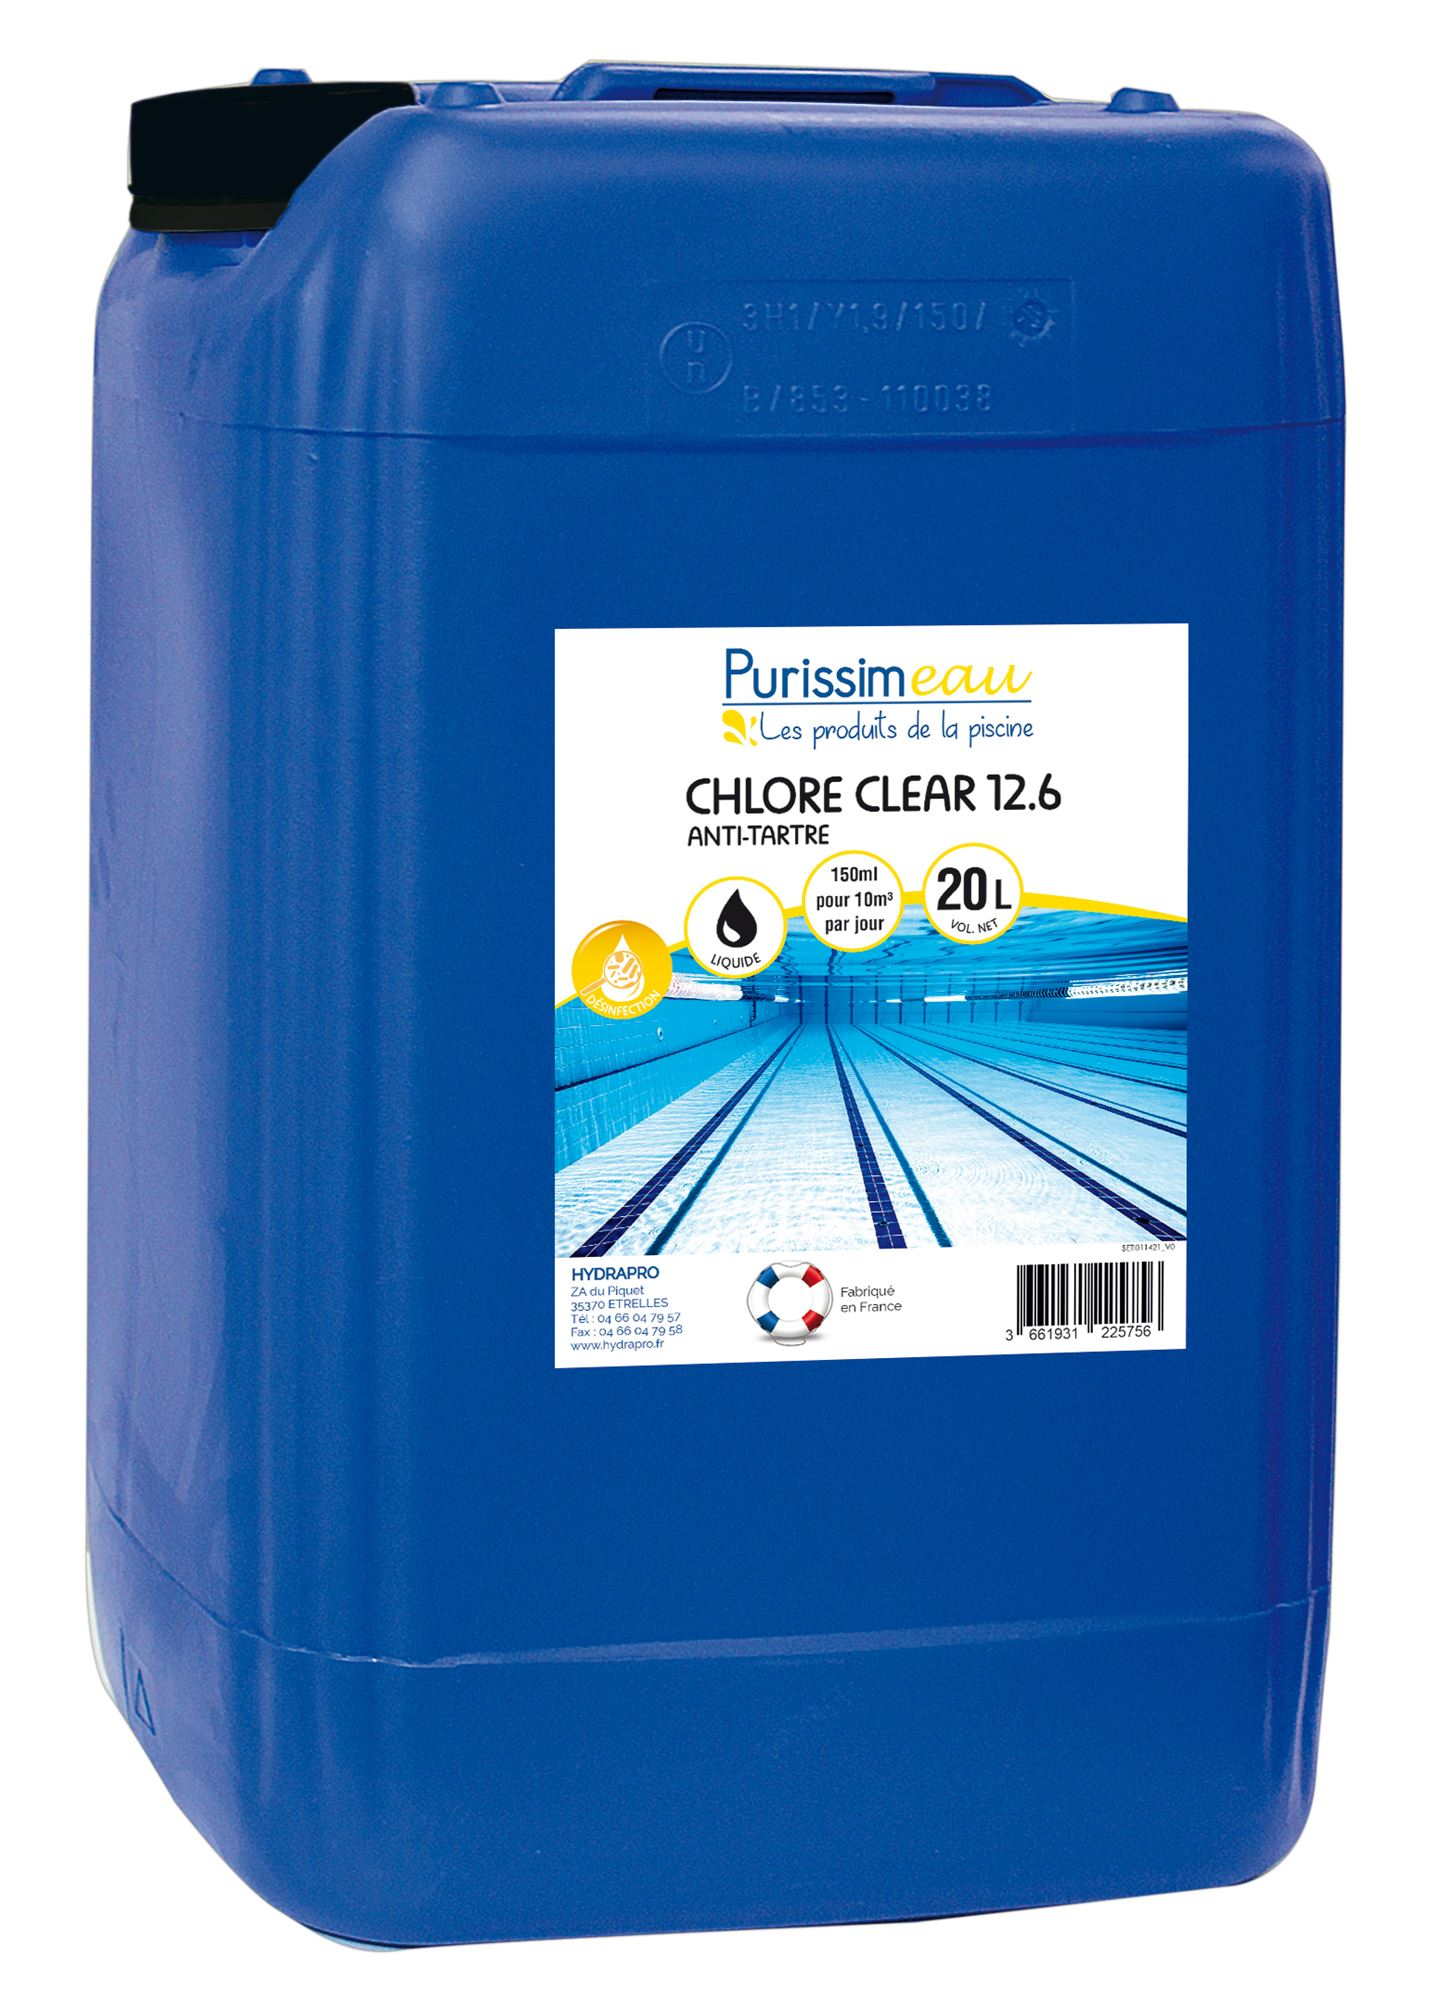 Chlore piscine liquide professionnel 48 piscine bidon 23 kg for Chlore piscine